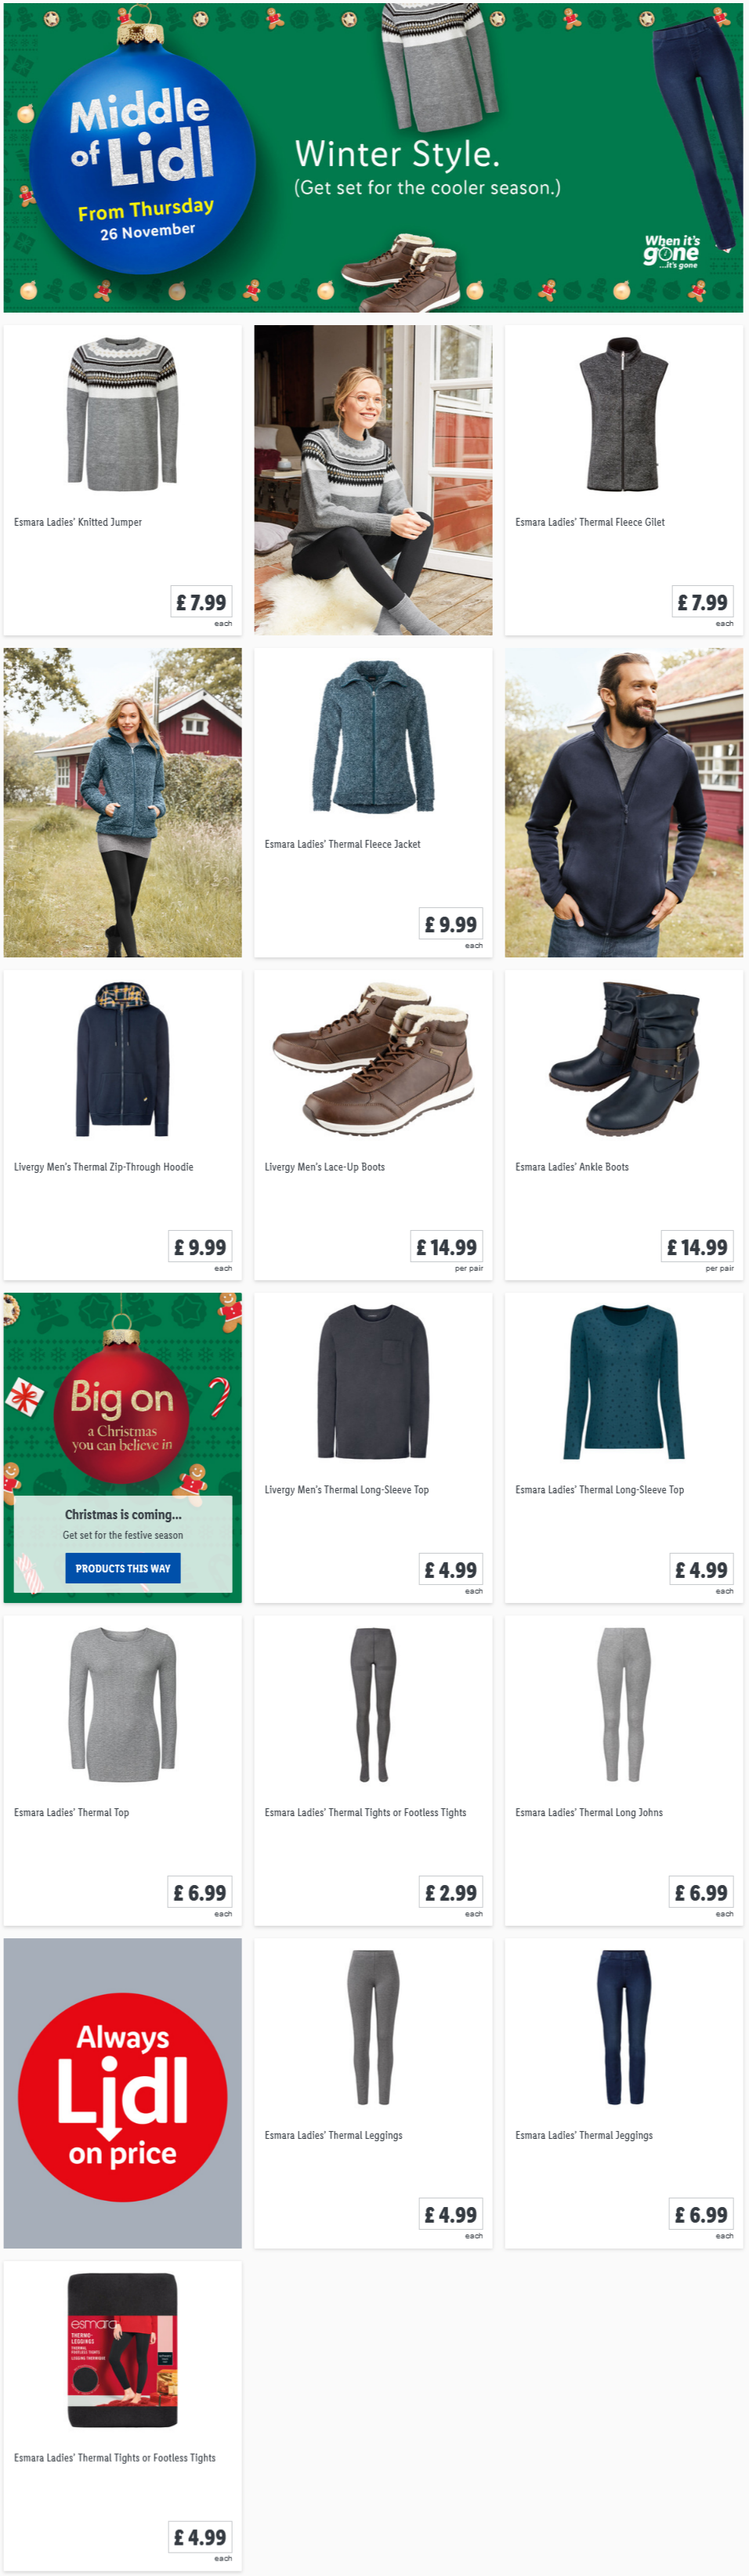 LIDL Offers this Thursday Winter Style From 26th November 2020